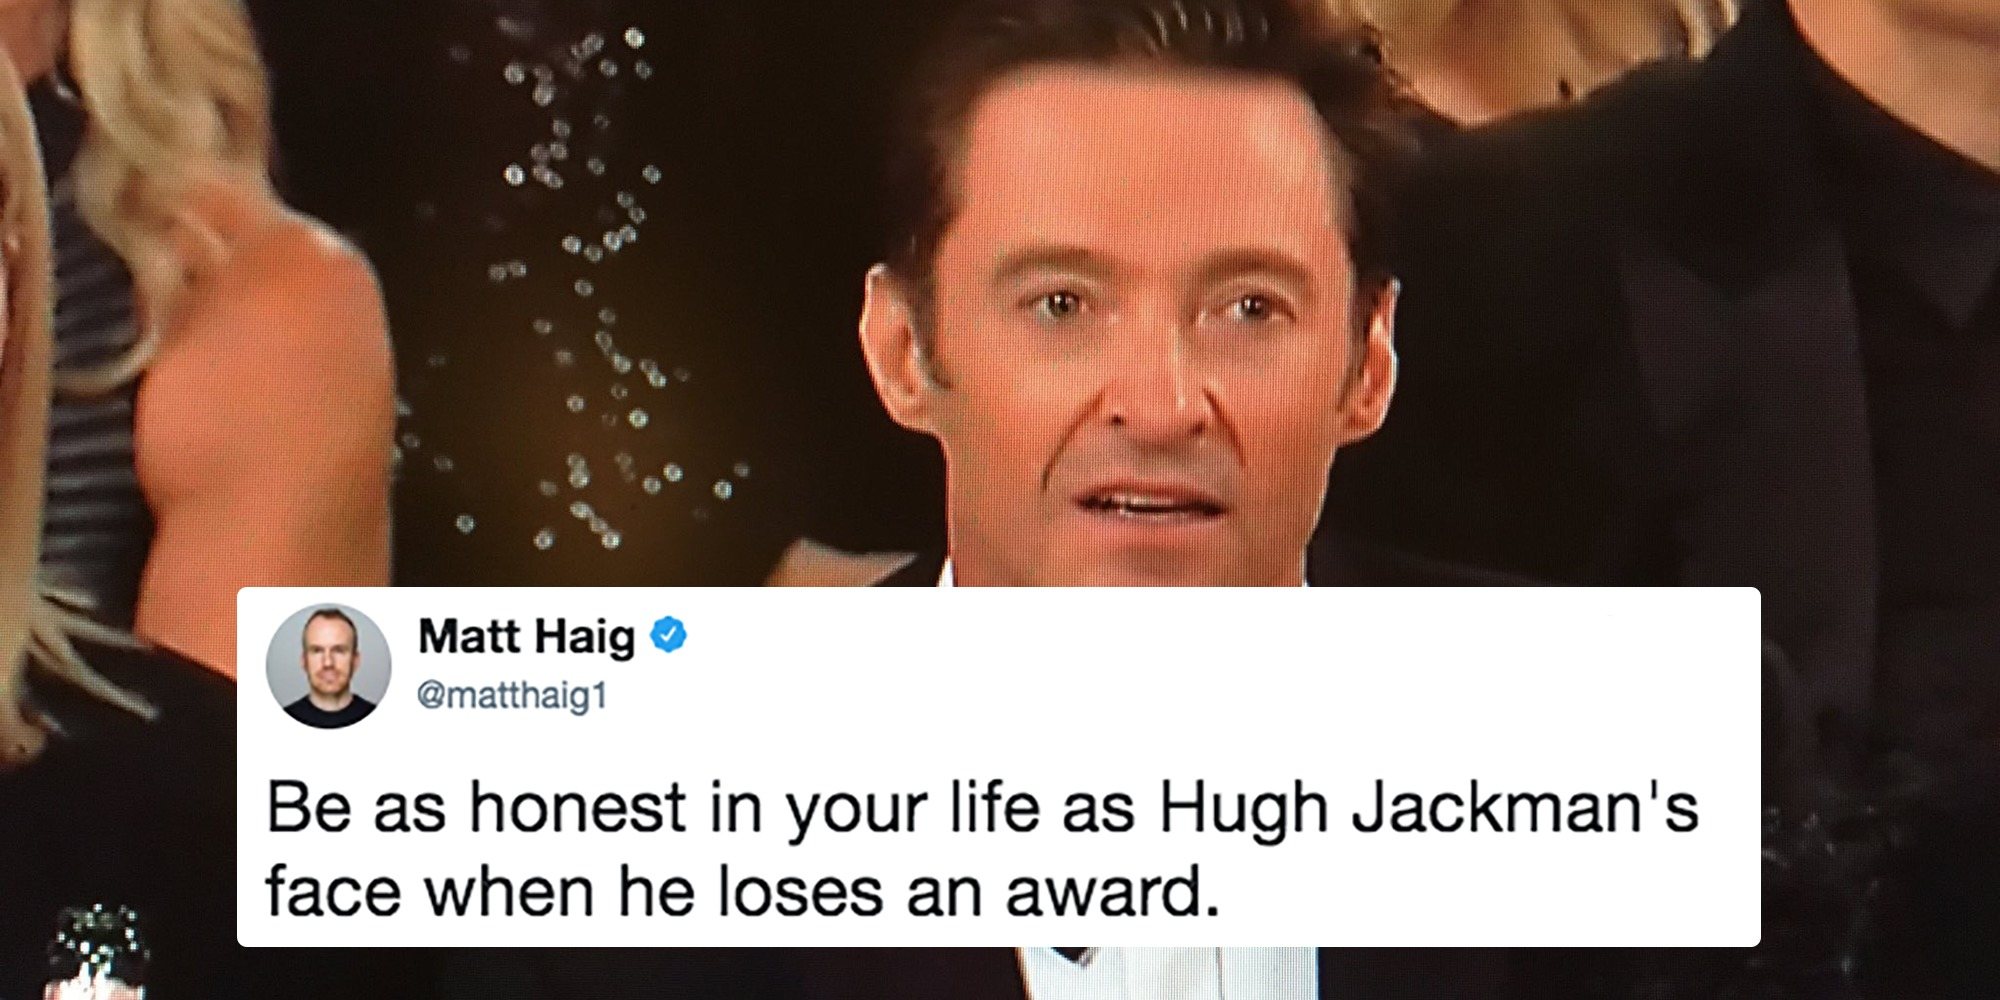 Hugh Jackman's honest face when losing an award.